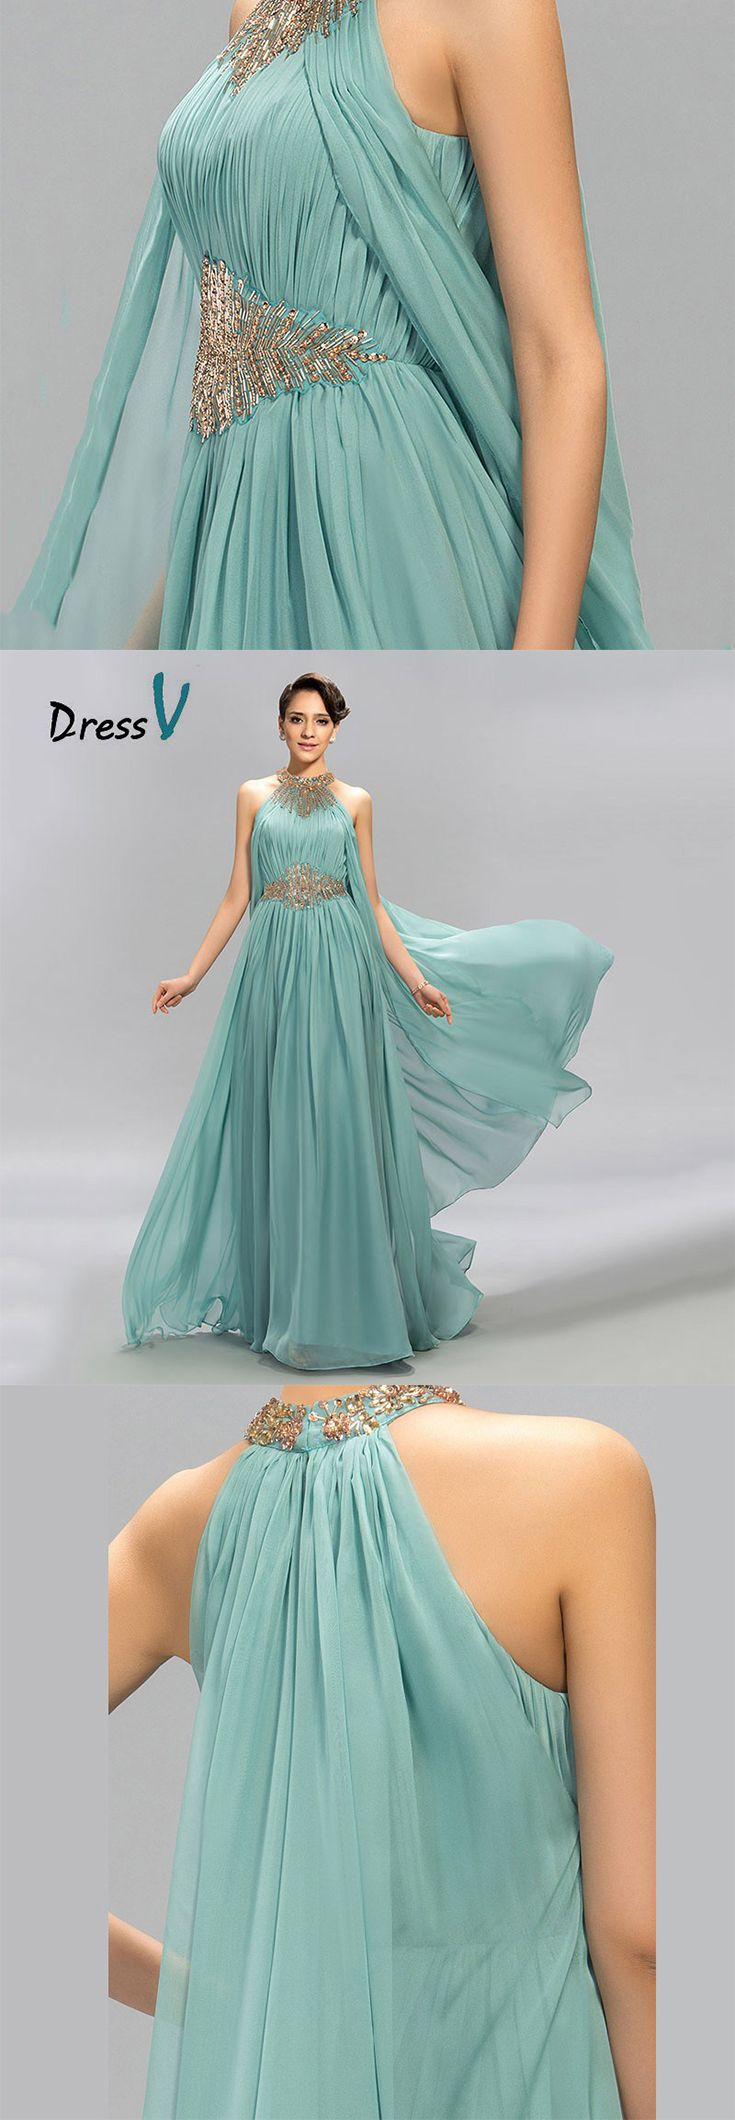 66 best Teal Prom Dresses images on Pinterest | Teal prom dresses ...